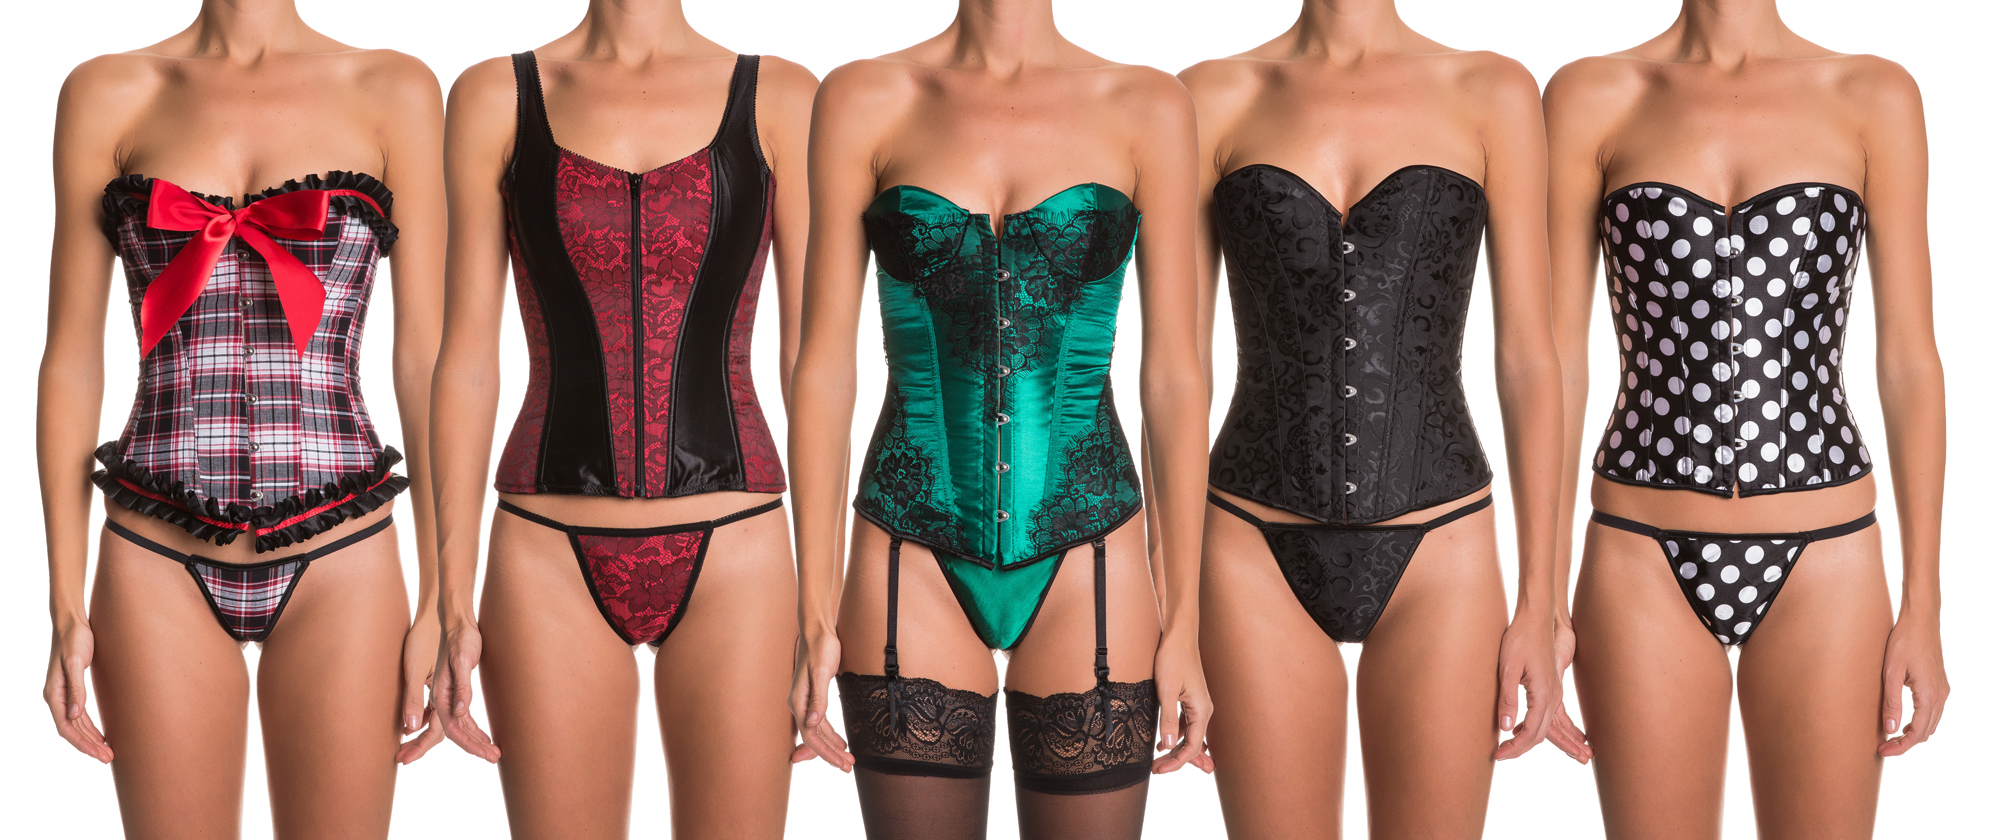 Intimax corsets are gorgeous for christmas